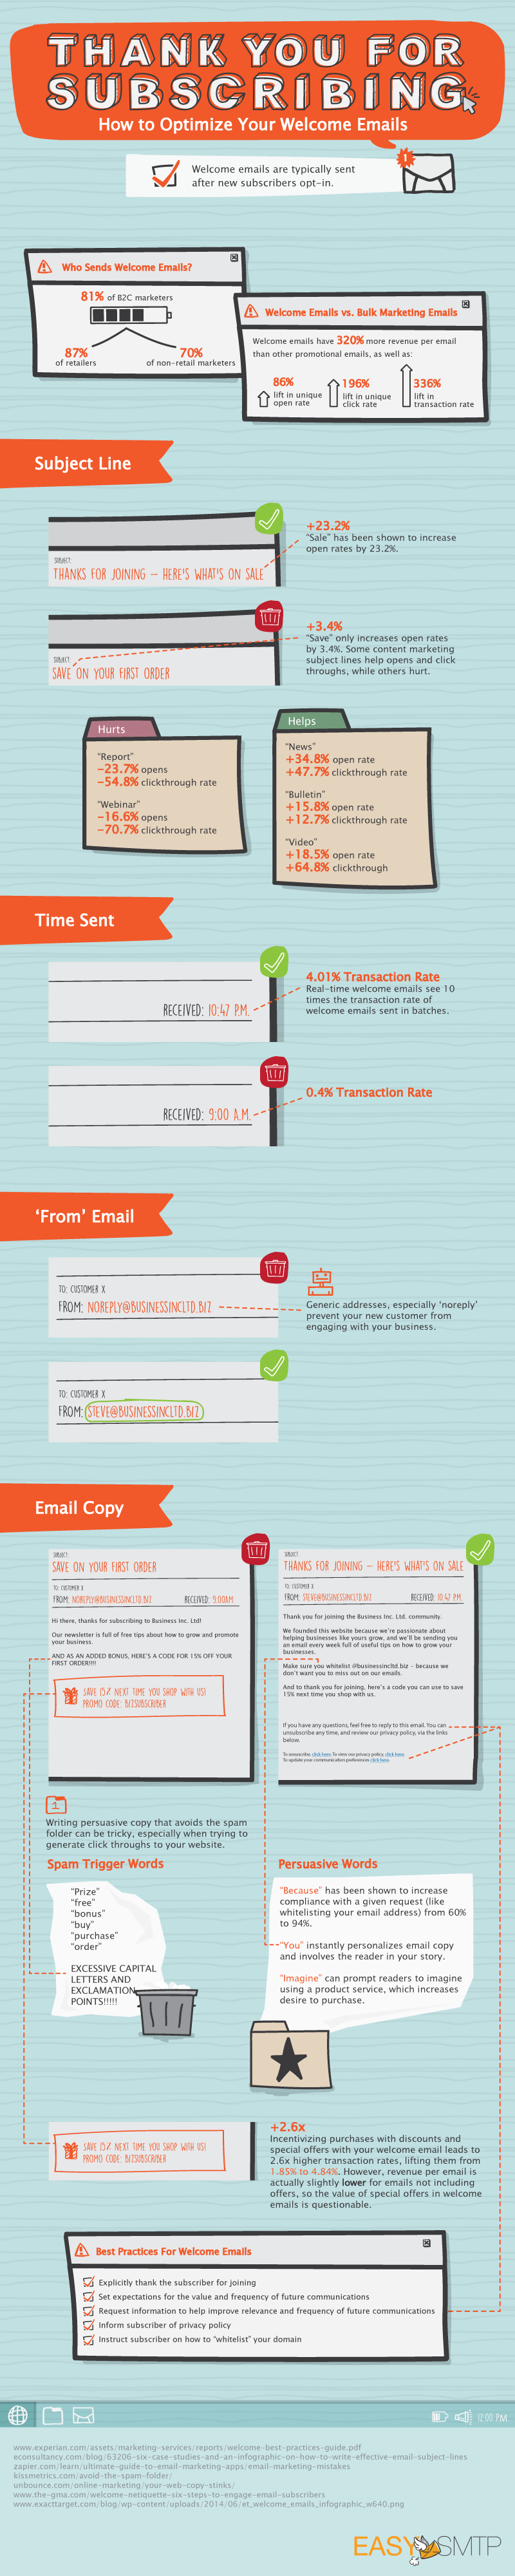 How to Engage Your Email Subscribers From the Moment They Sign Up (Infographic)